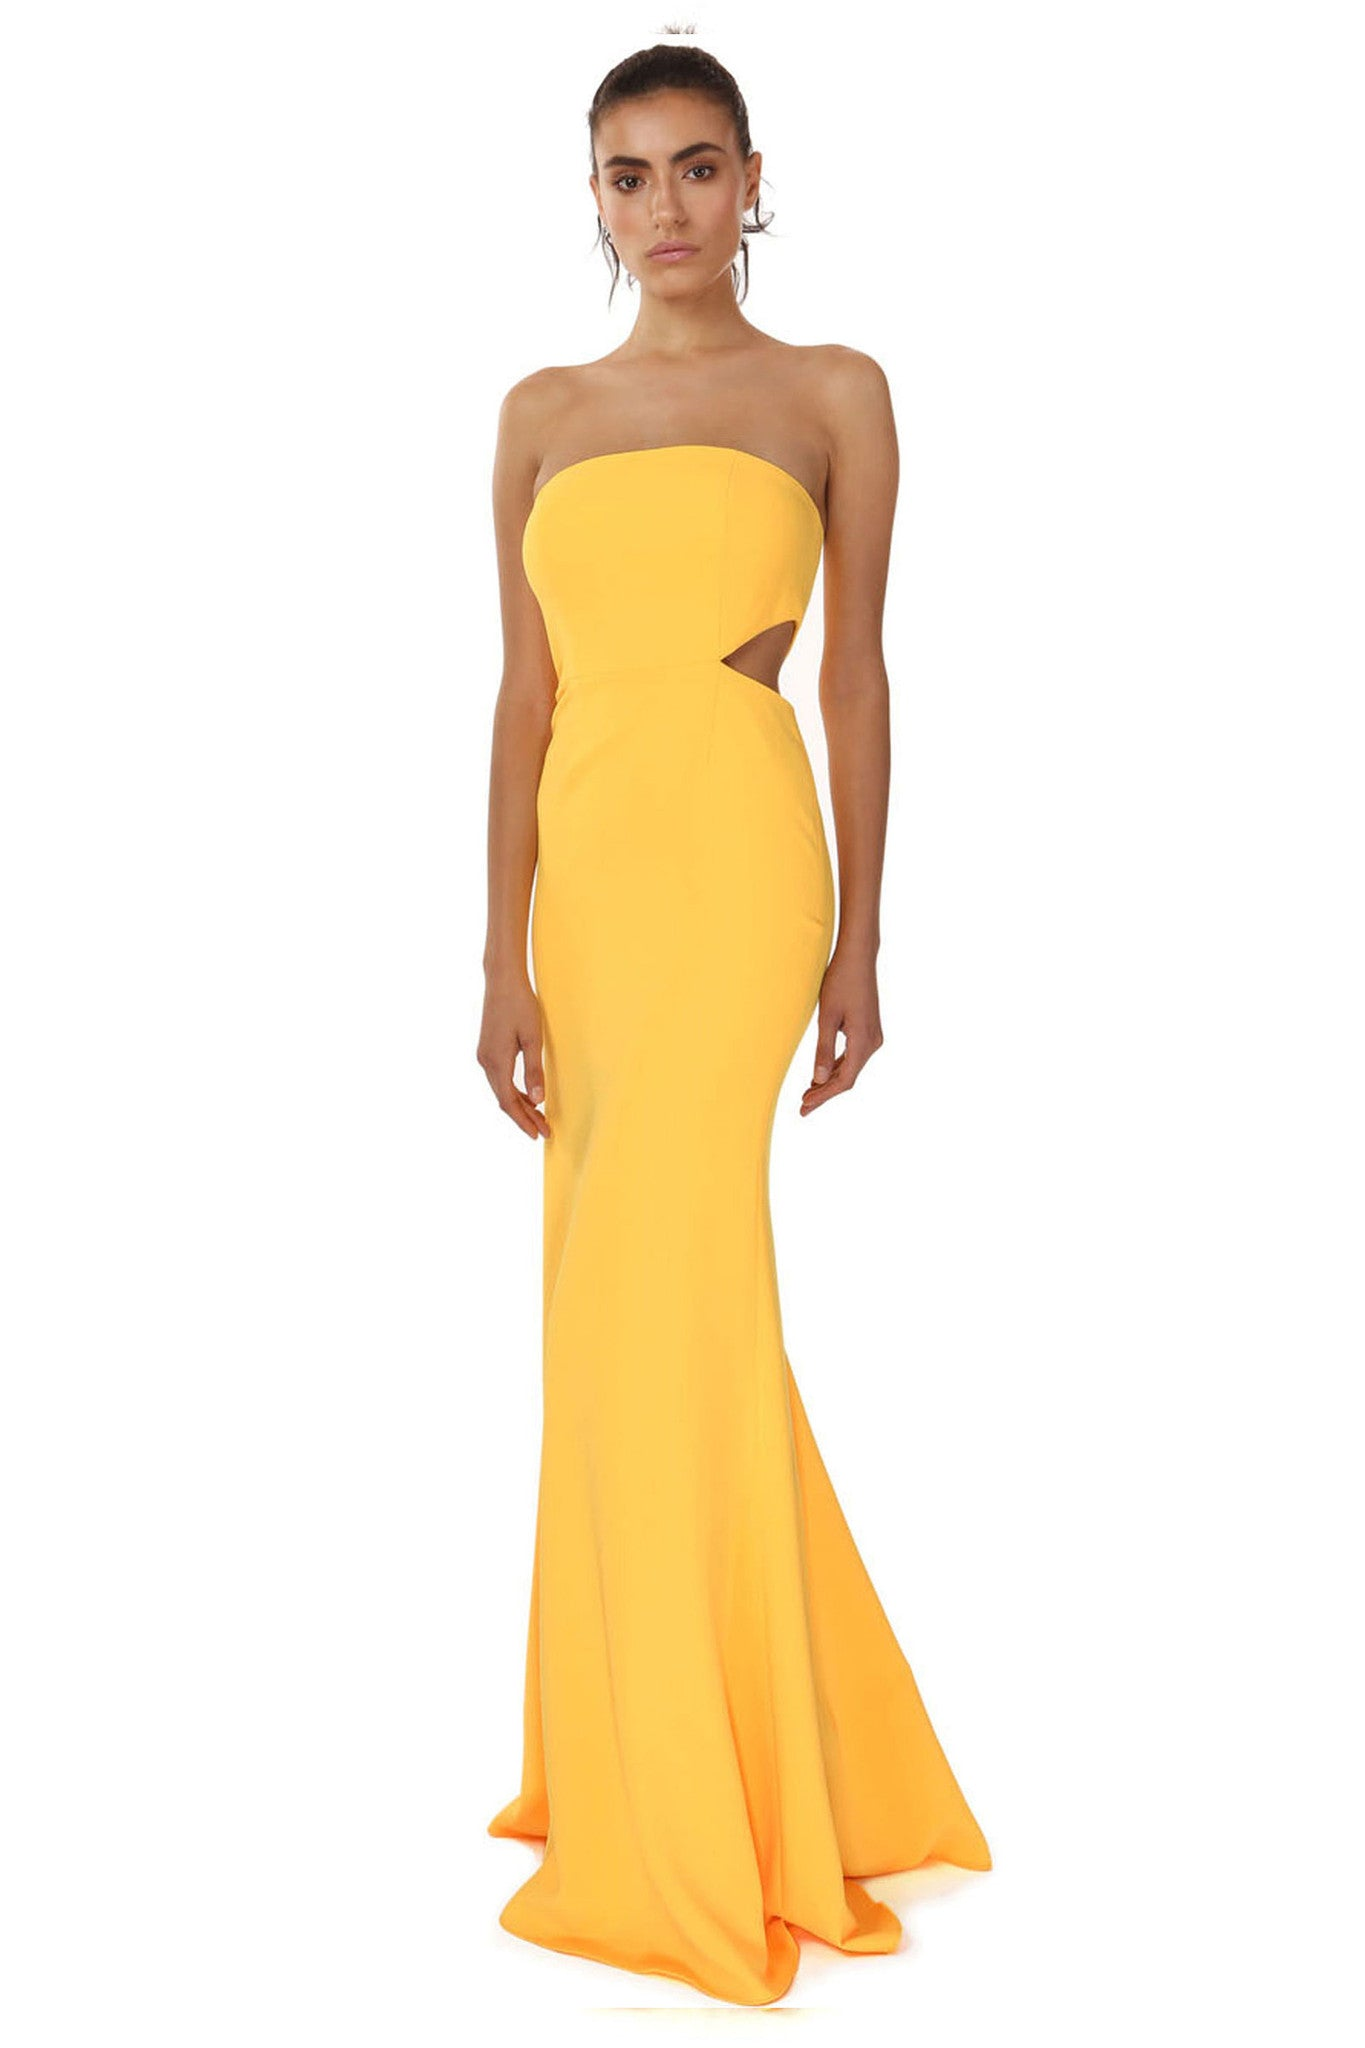 Jay Godfrey Sunflower Strapless Cut-Out Gown - Front View